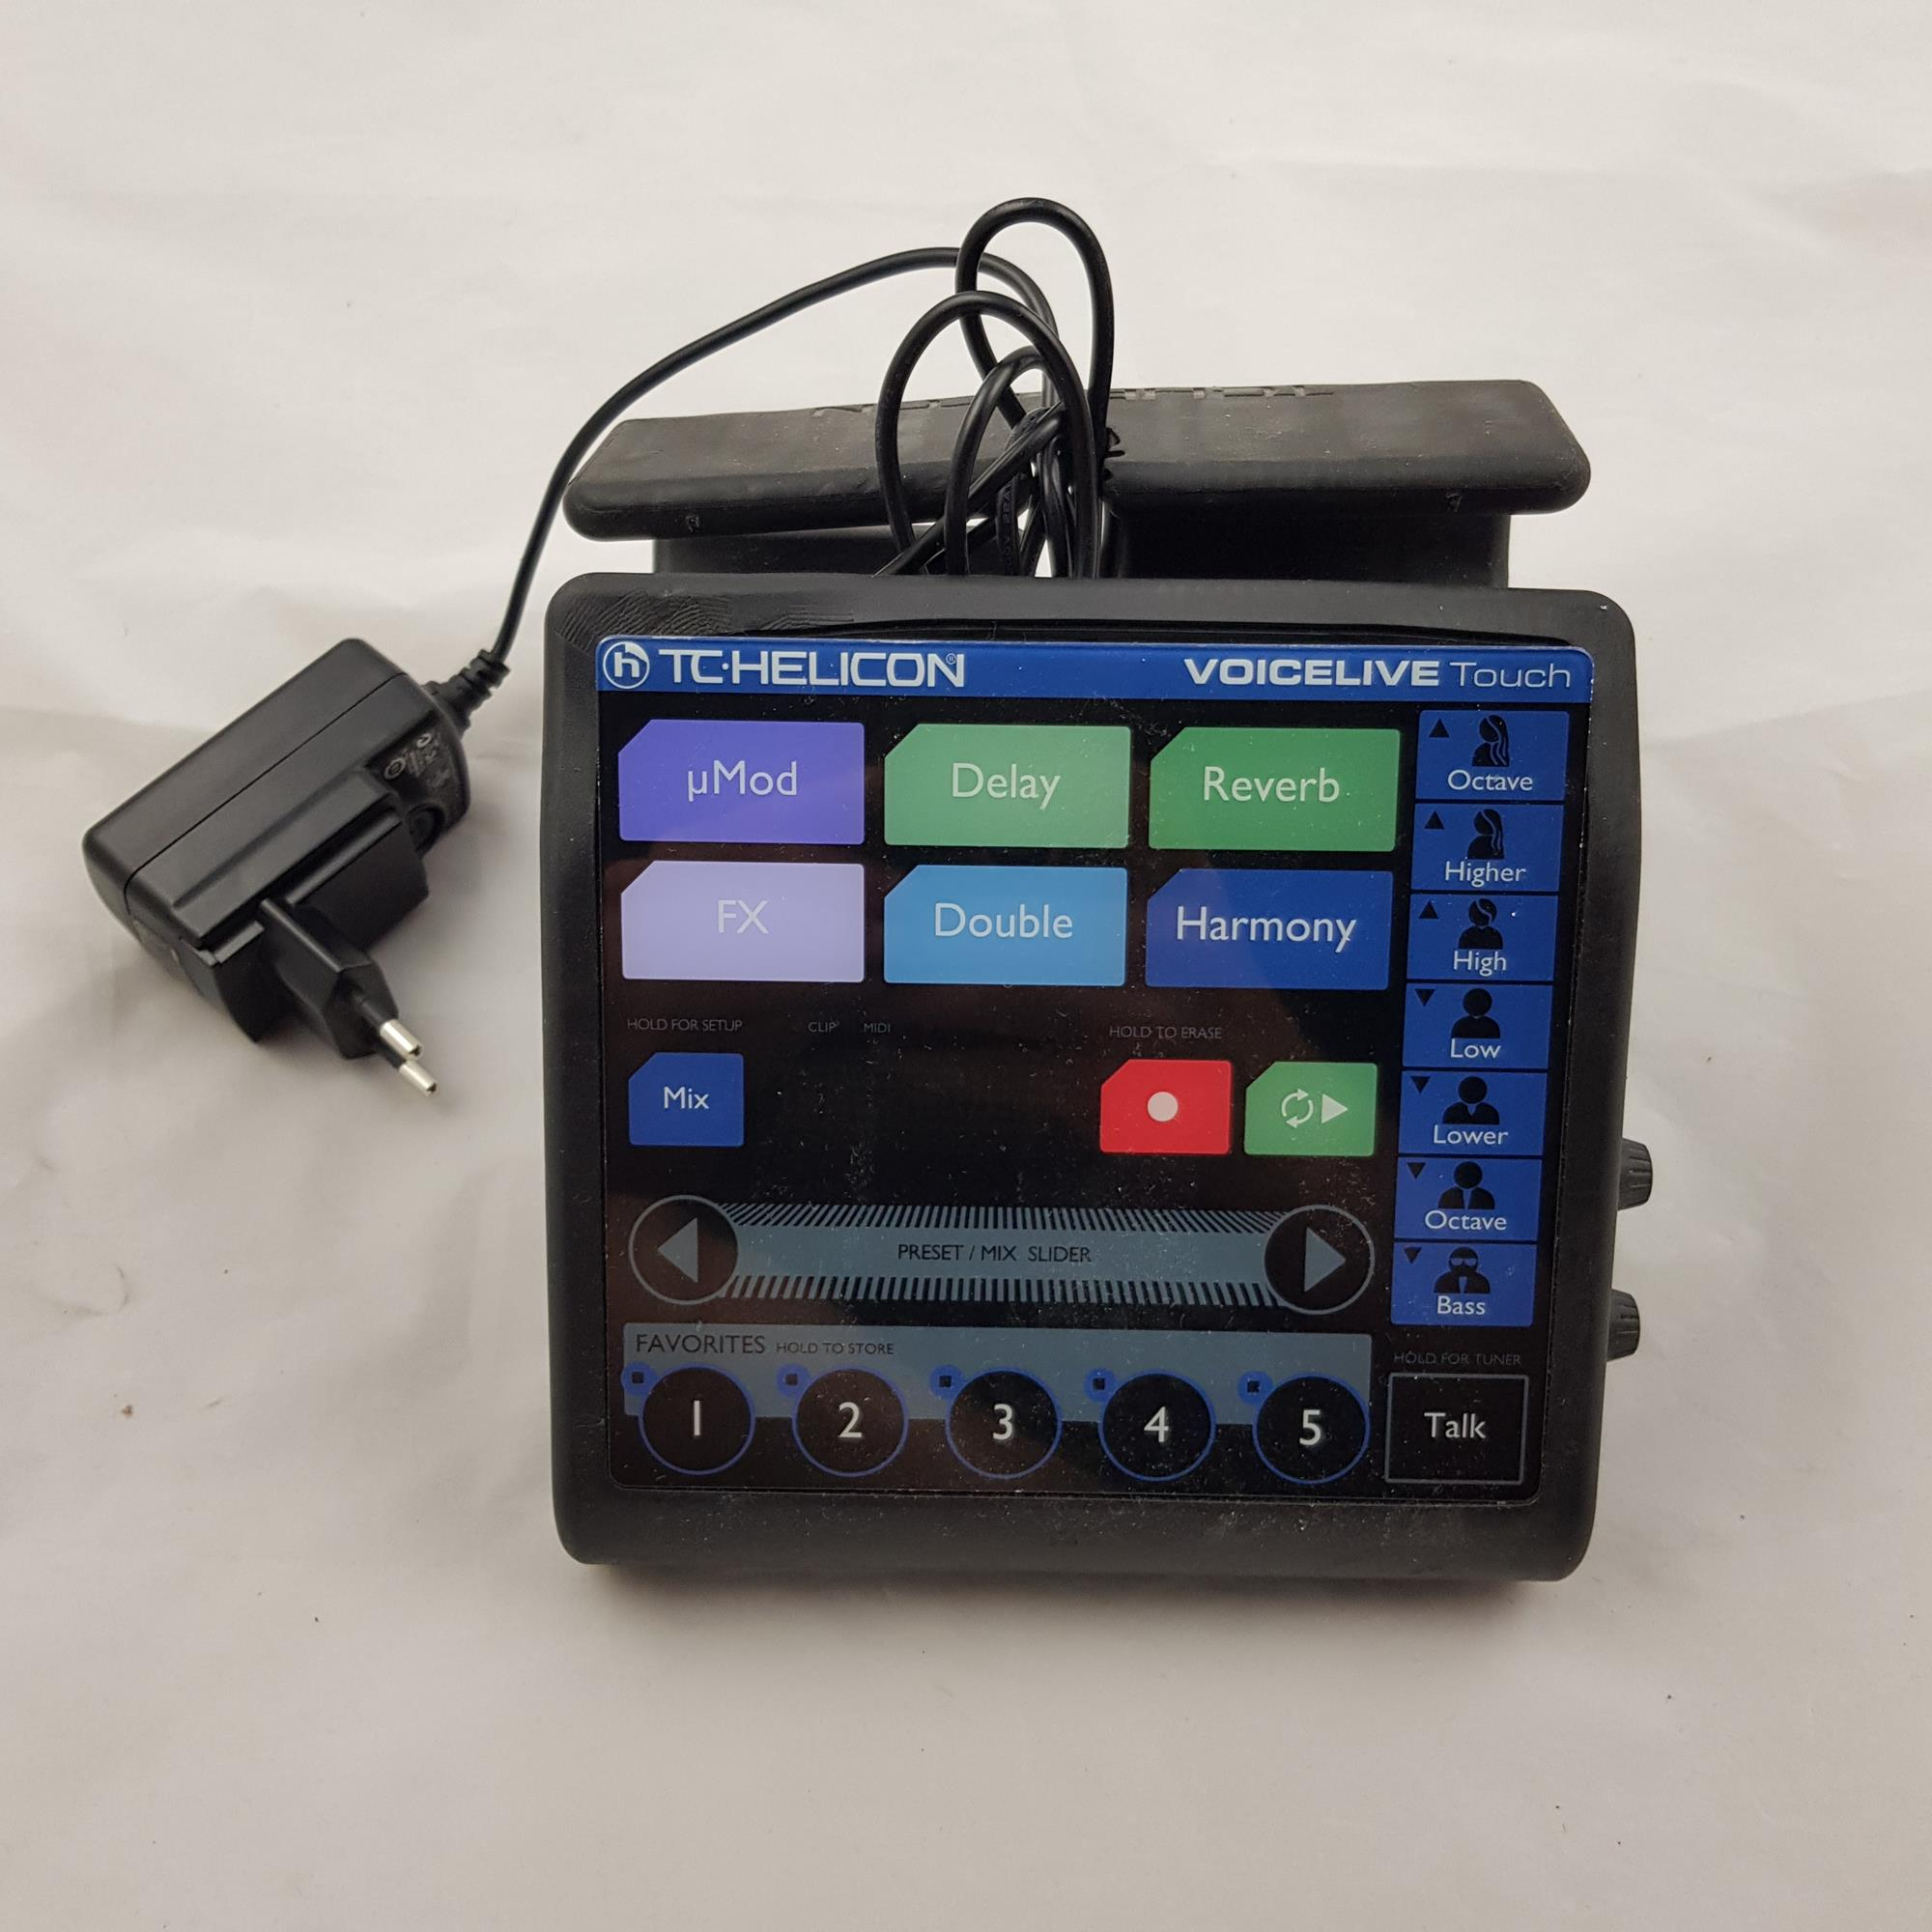 TC-HELICON-VOICELIVE-TOUCH-sku-1594478477672